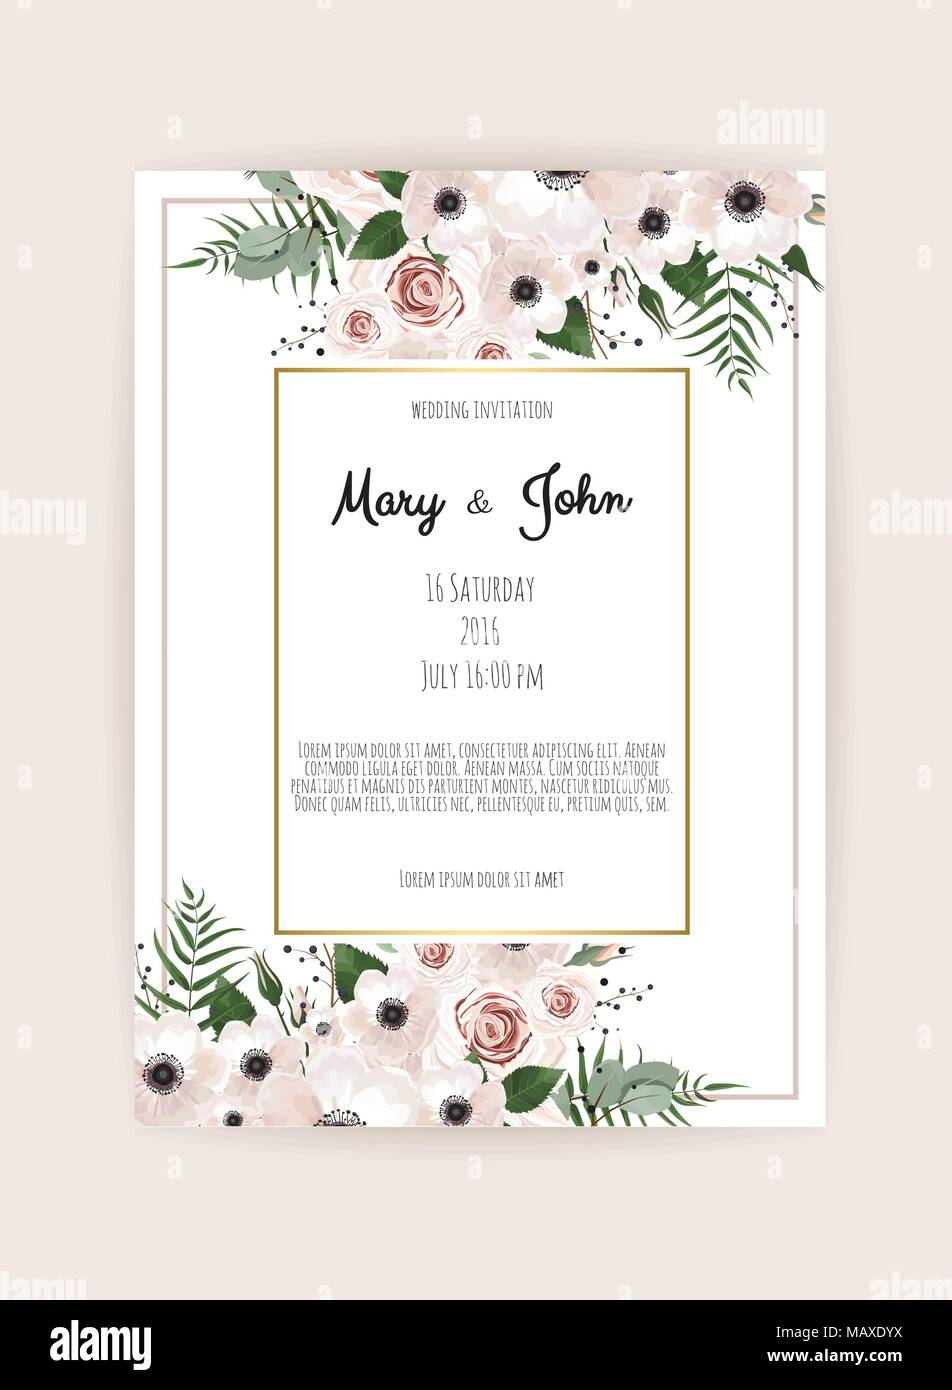 Vector Invitation With Handmade Floral Elements Wedding